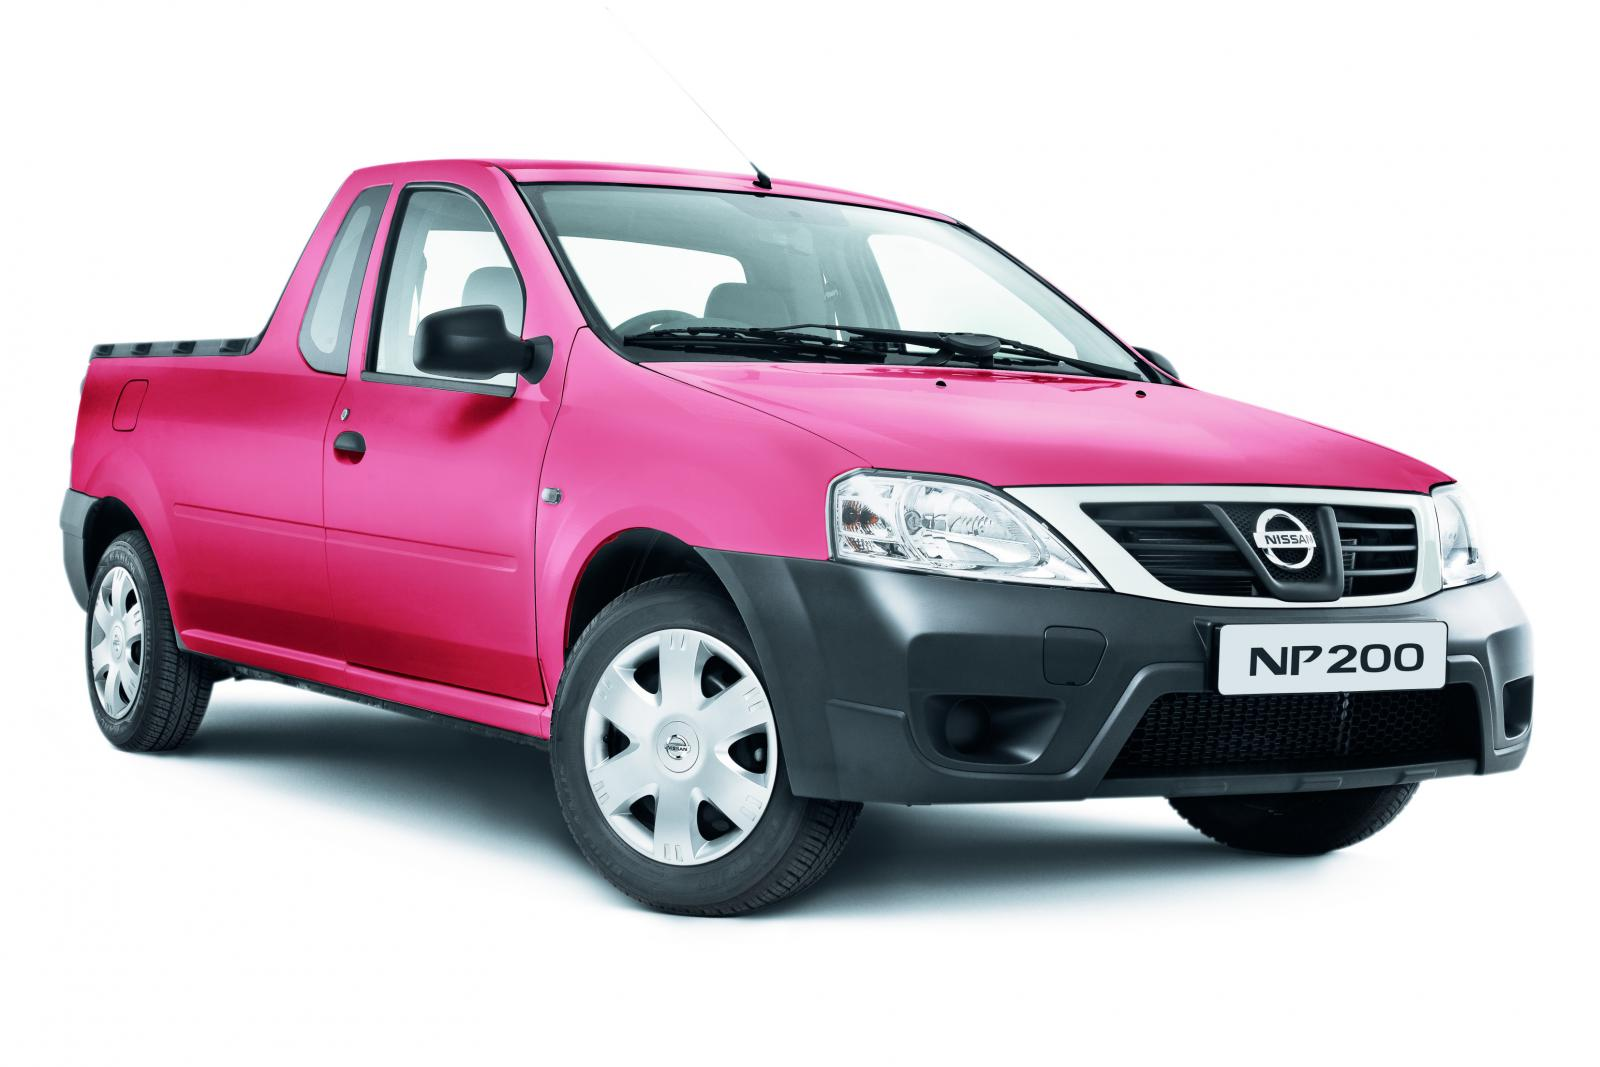 nissan np200, used cars for sale